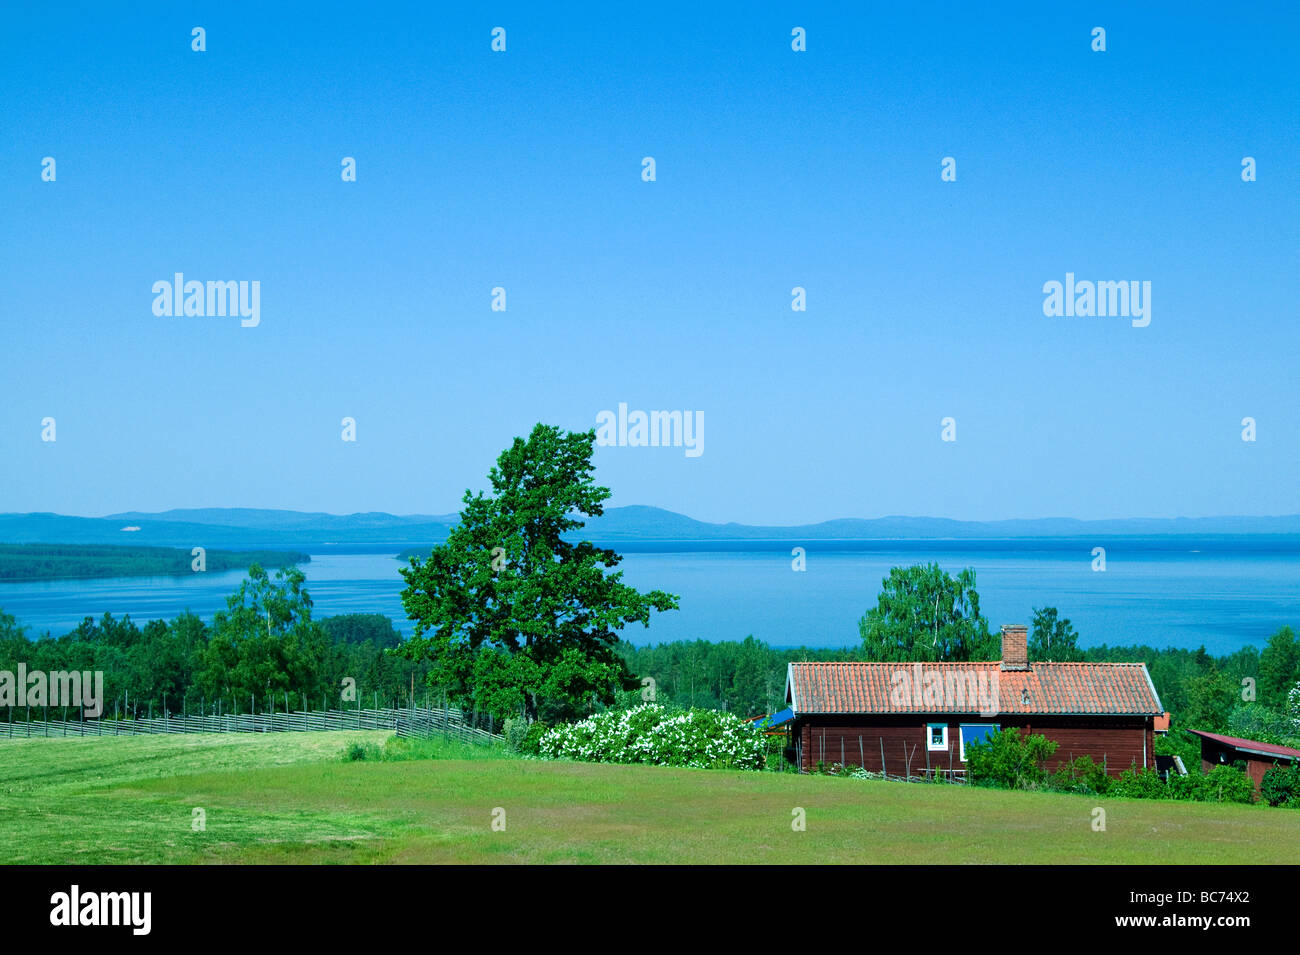 View over a Swedish lake with a red house and green areas in front - Stock Image